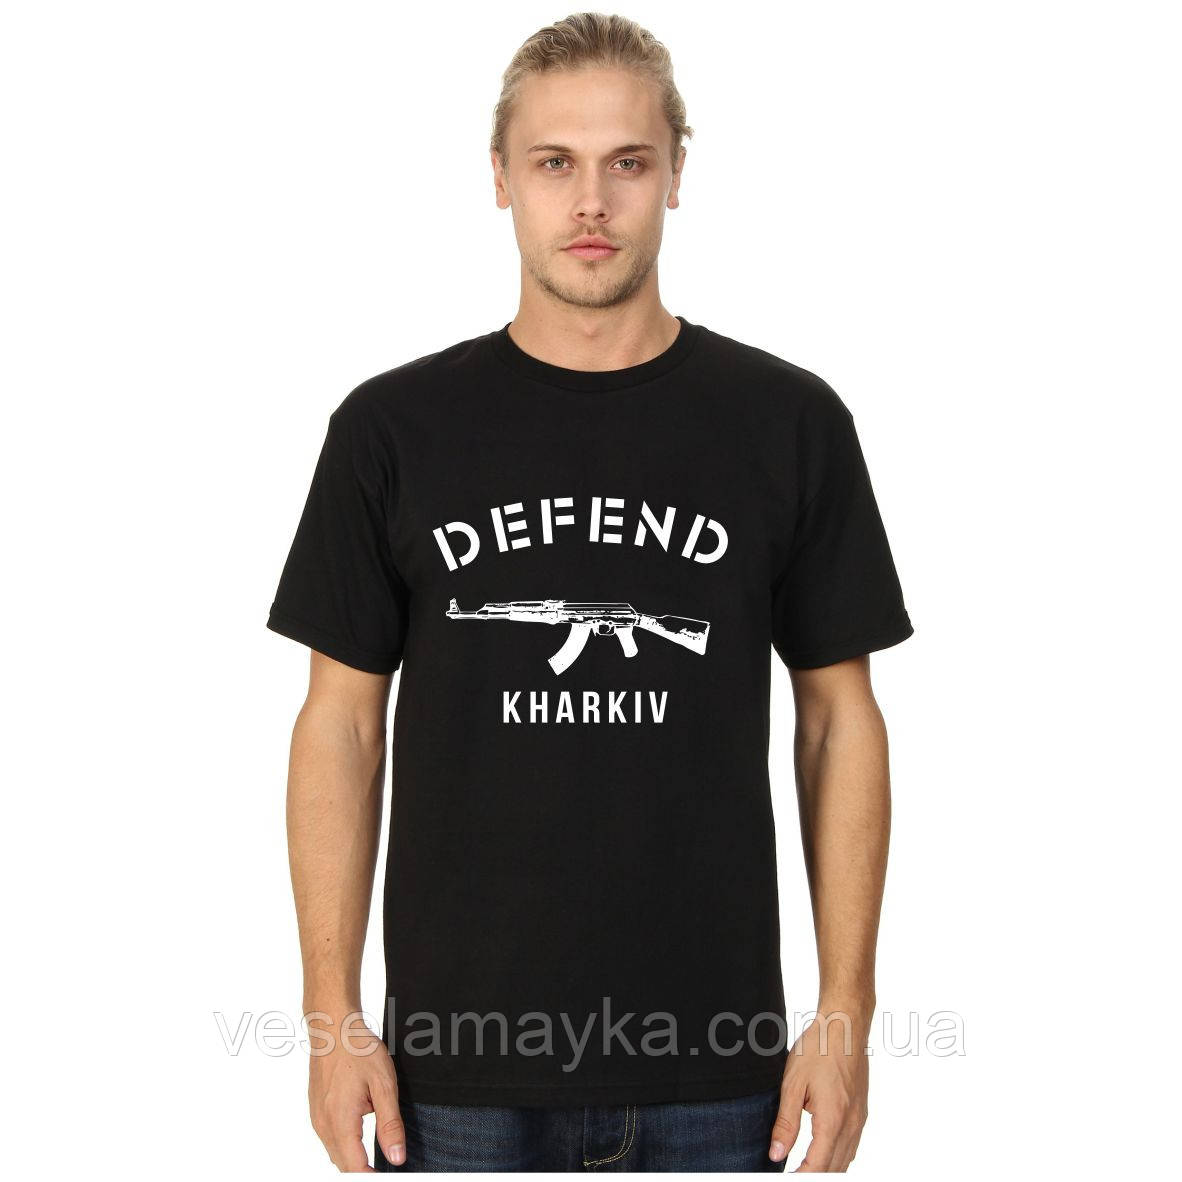 Футболка Defend Kharkiv